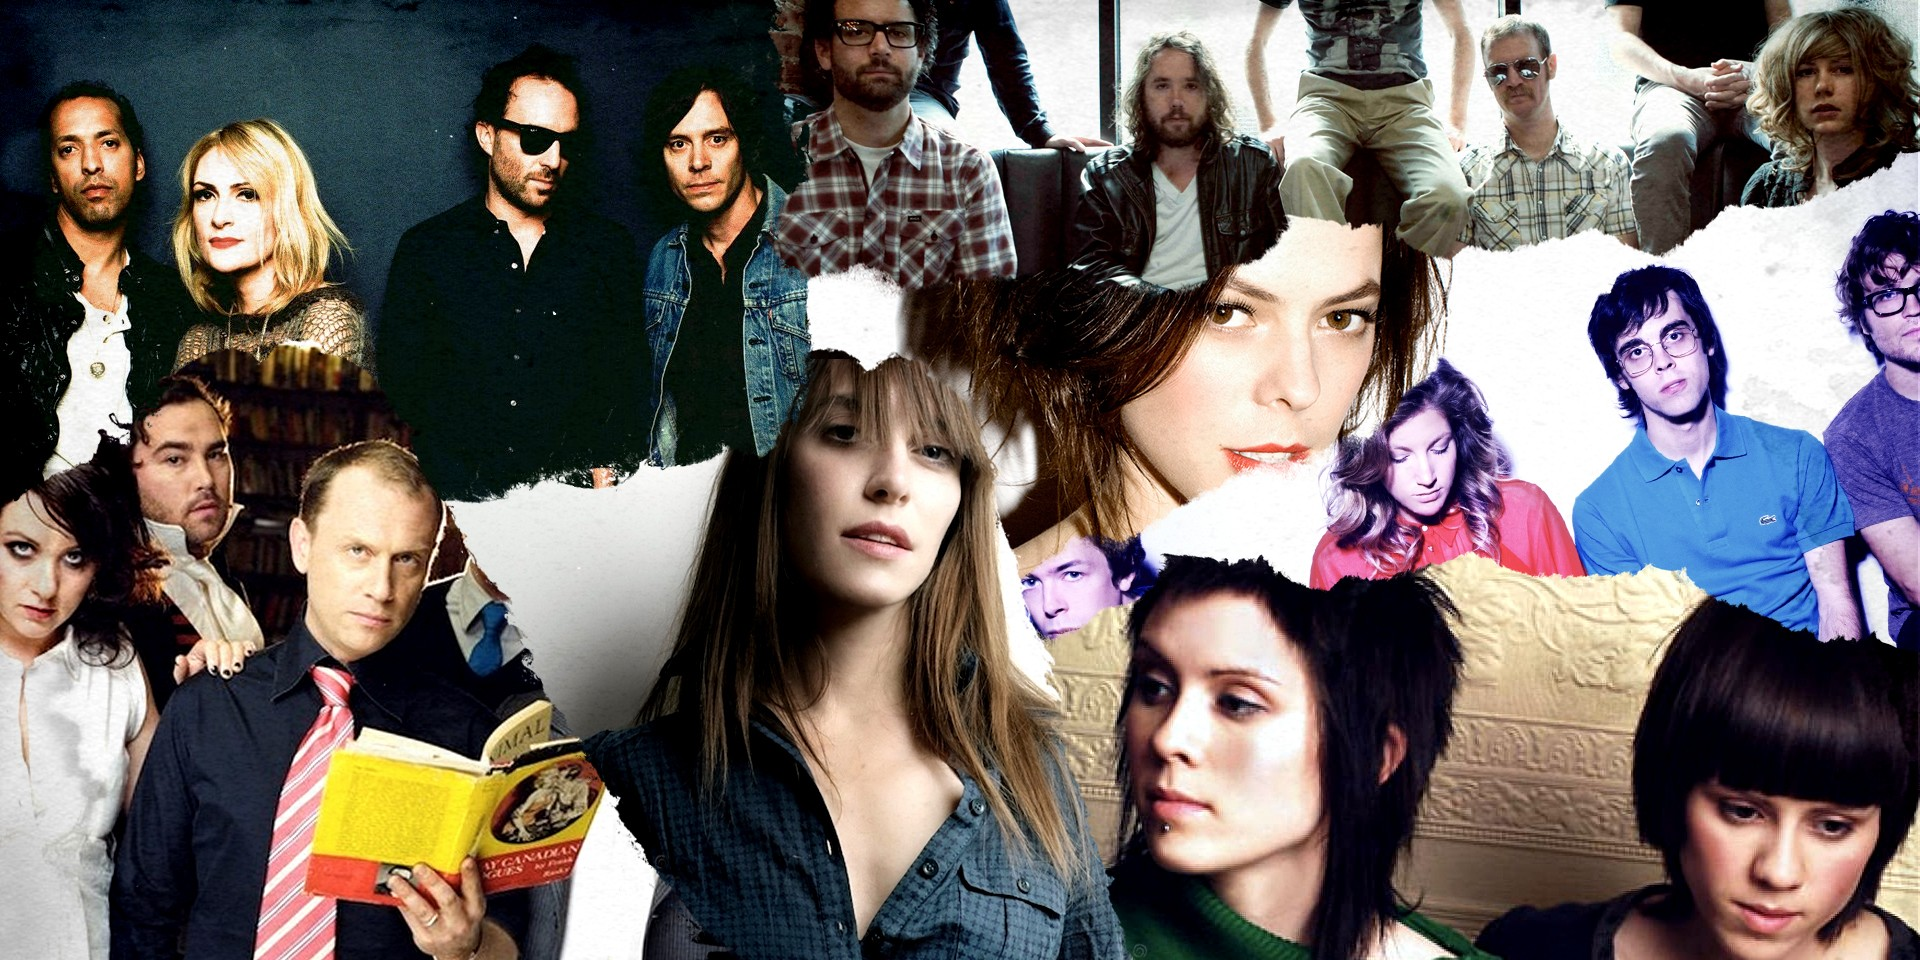 Primer Playlist: Indie pop of the mid-00s, emotionally potent music for a new generation